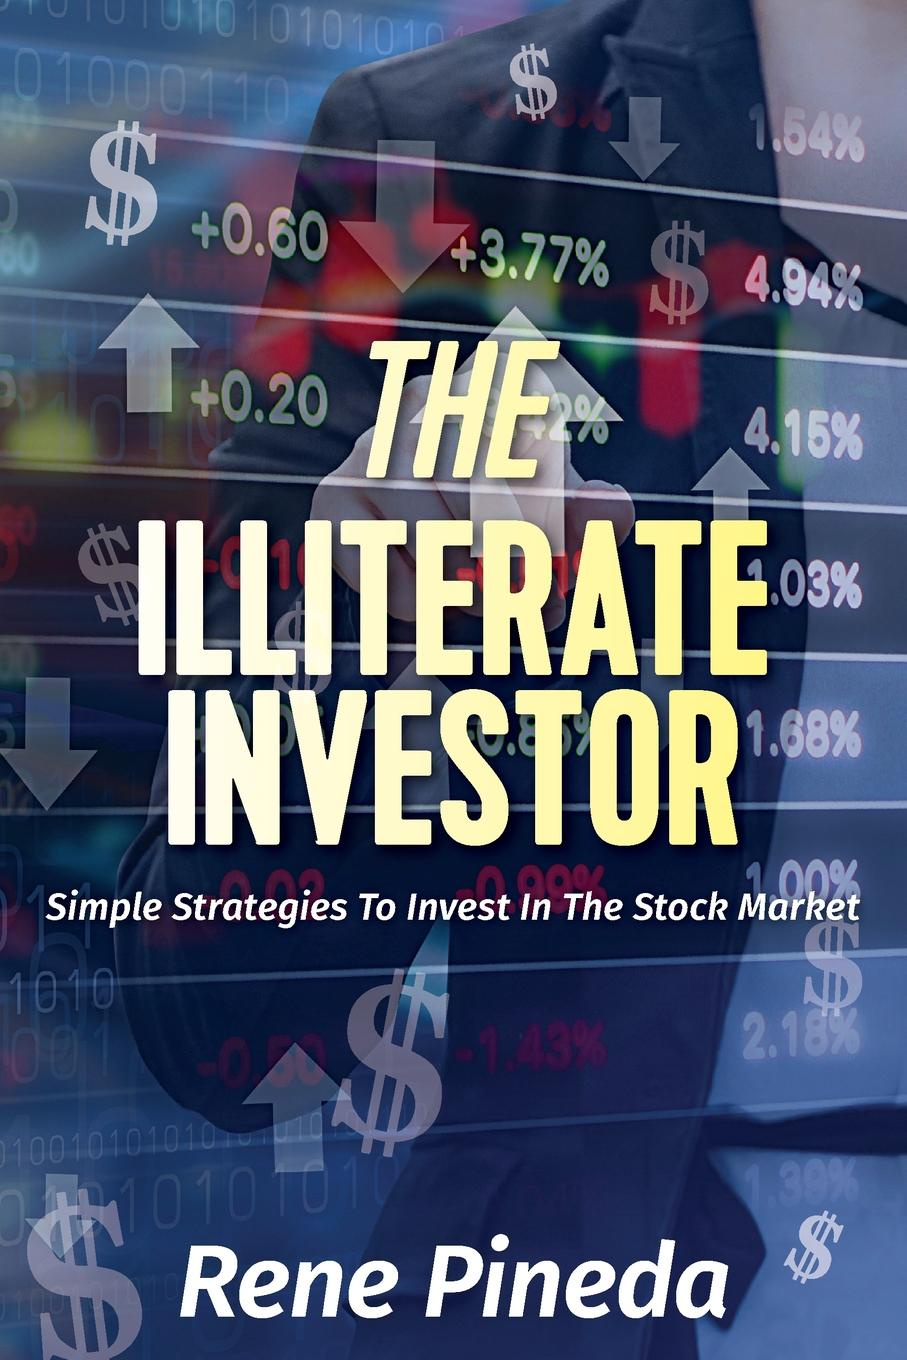 Rene Pineda The Illiterate Investor. Simple Strategies to Invest in the Stock Market that perfect someone